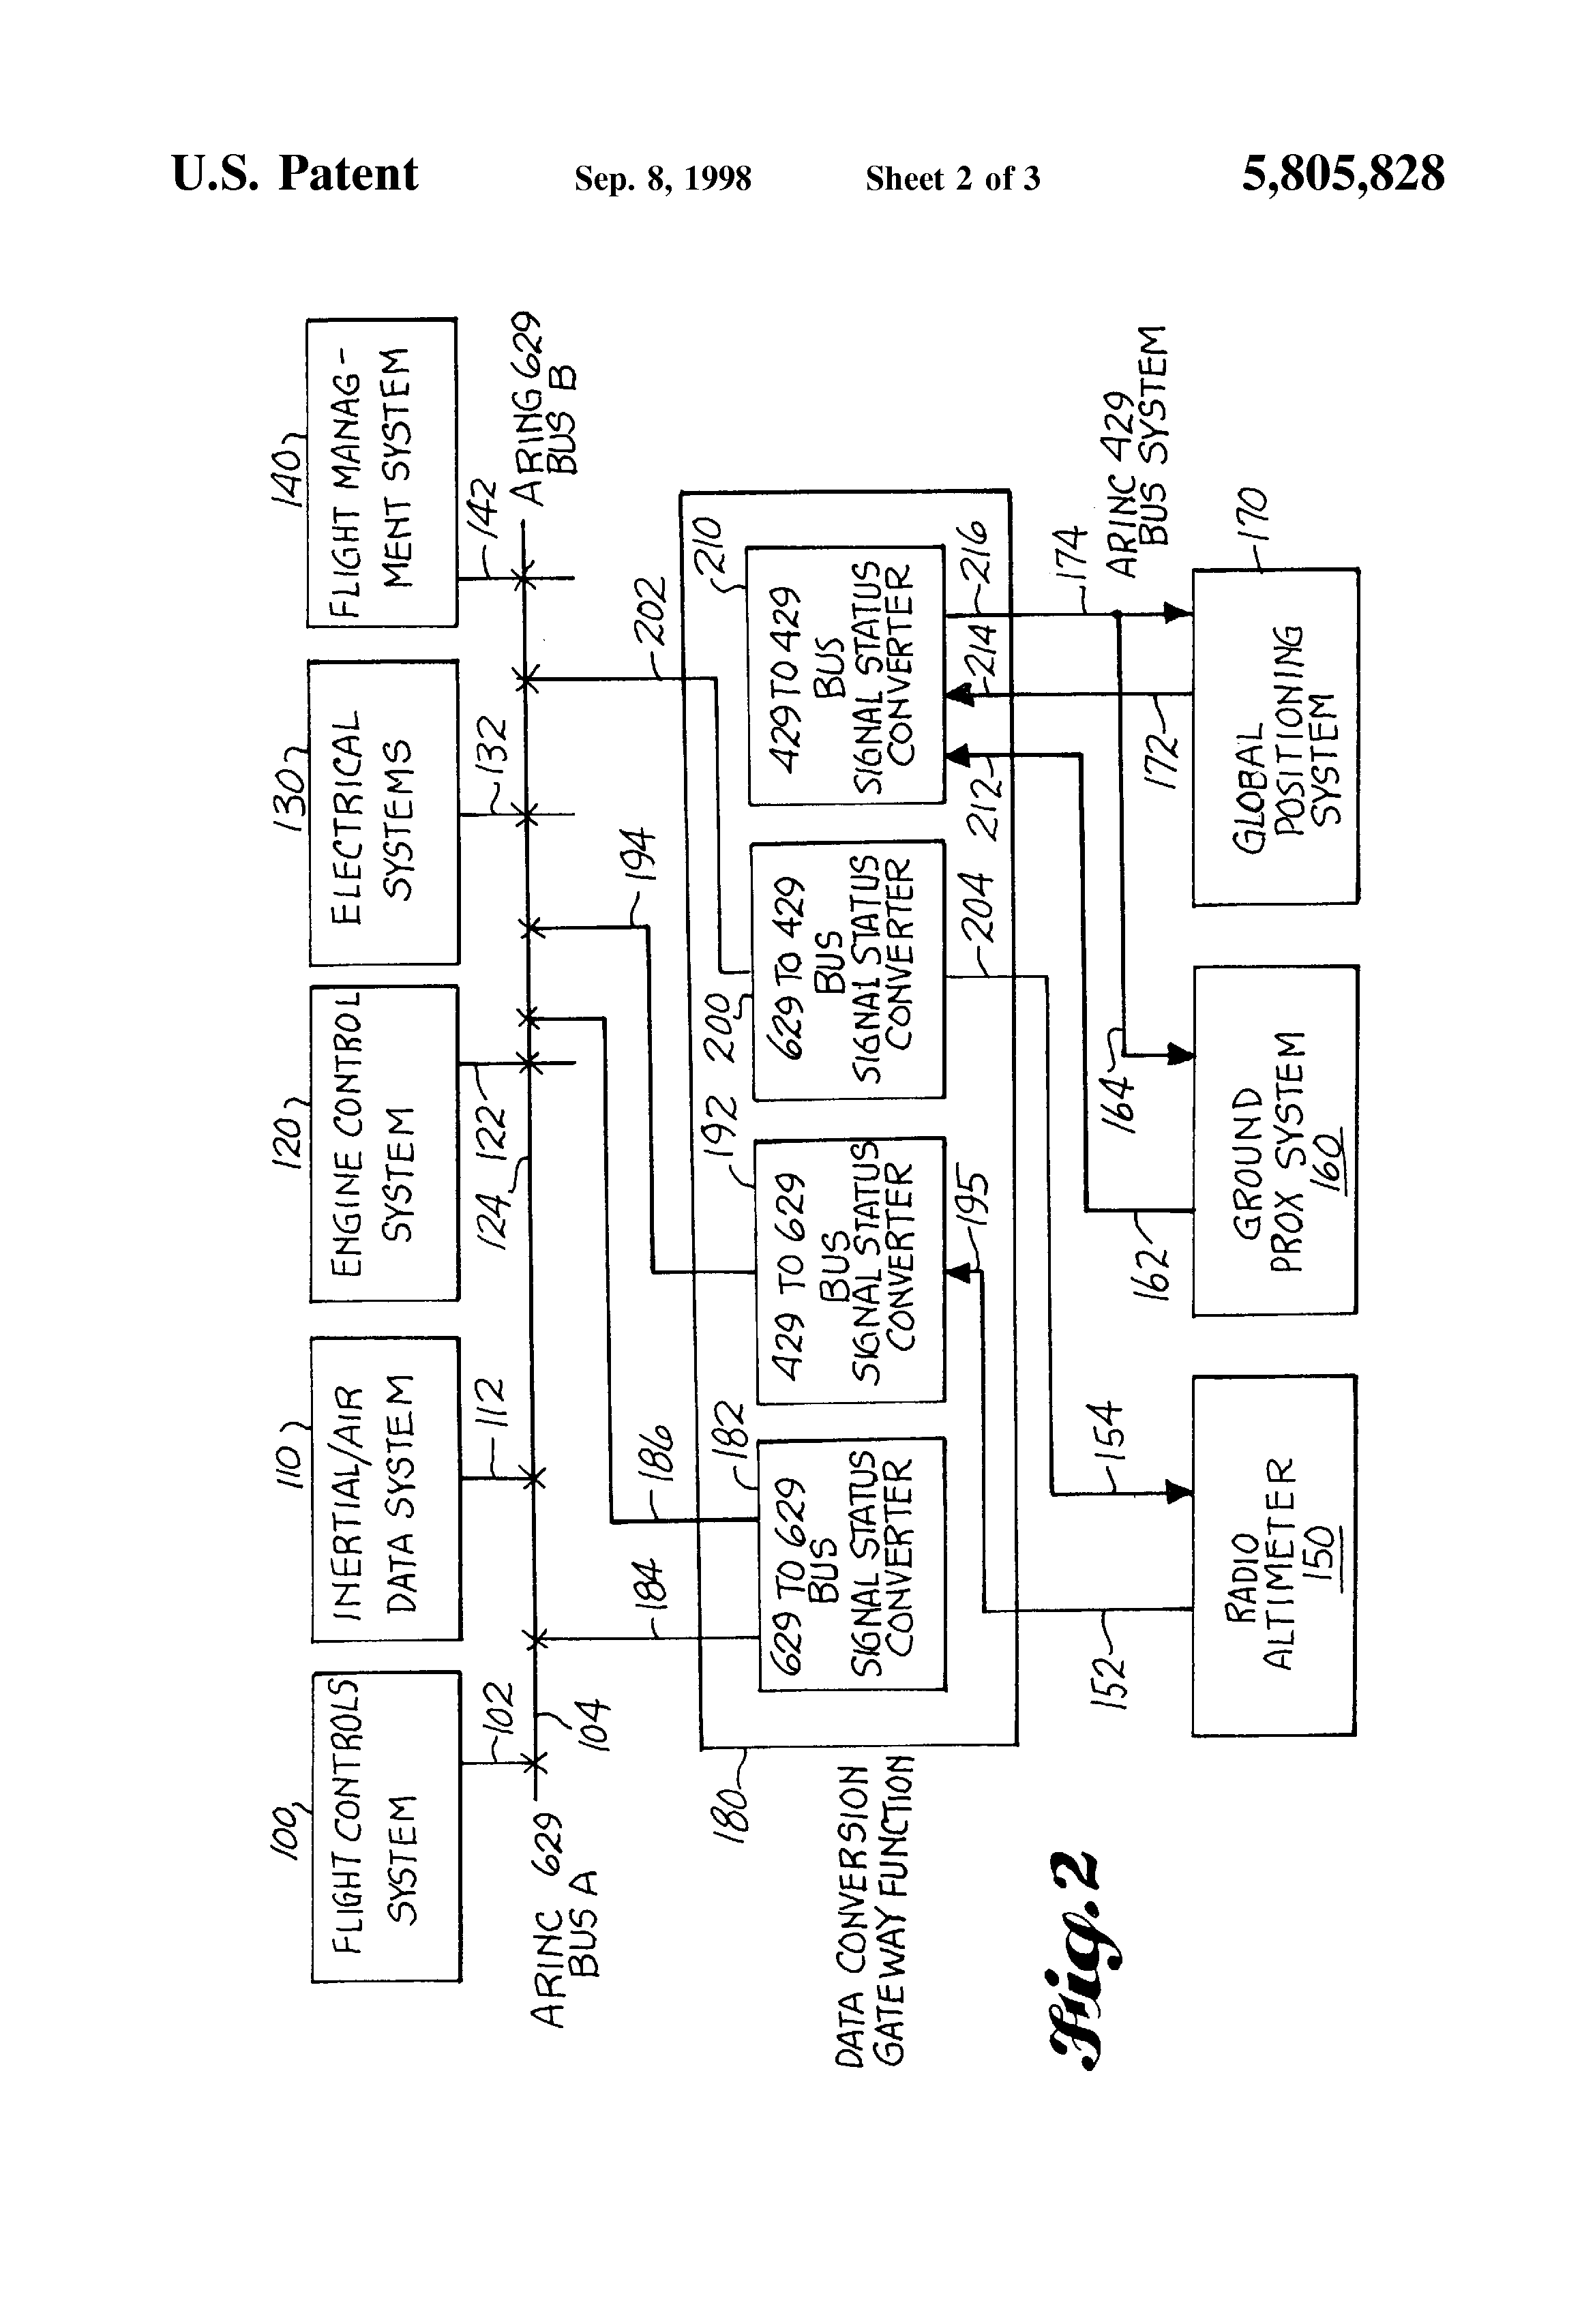 Patent Us5805828 Method And Apparatus For An Avionics System 2005 Dodge Caravan Fuse Box Drawing